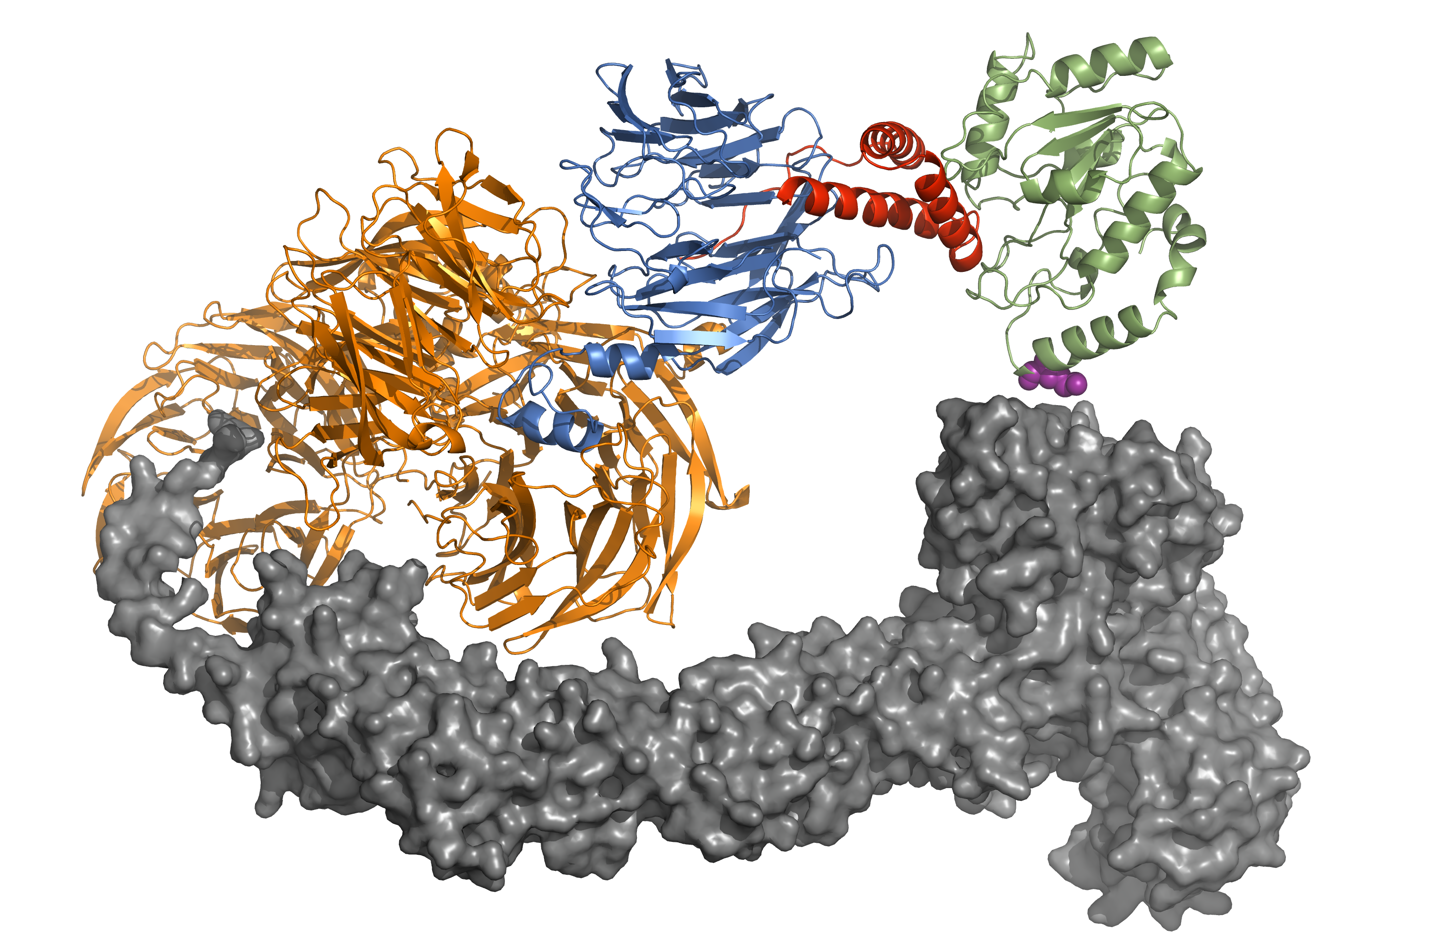 X-ray crystal structure of HIV-1 Vpr (red) in complex with uracil DNA glycosylase 2 (UNG2, green) and the Cul4-DCAF1 E3 ligase,